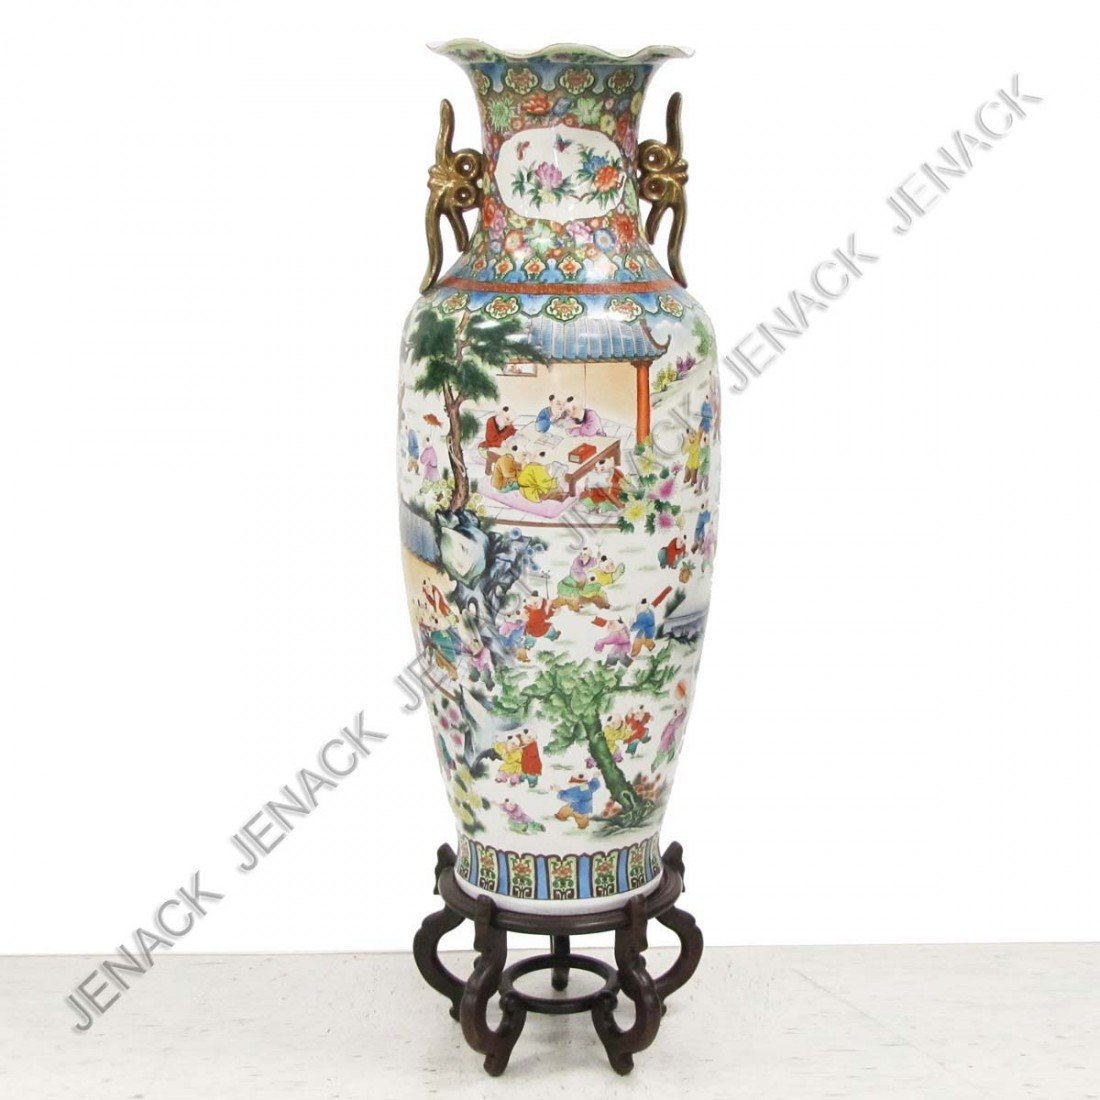 24: MONUMENTAL CHINESE FAMILLE ROSE DECORATED VASE